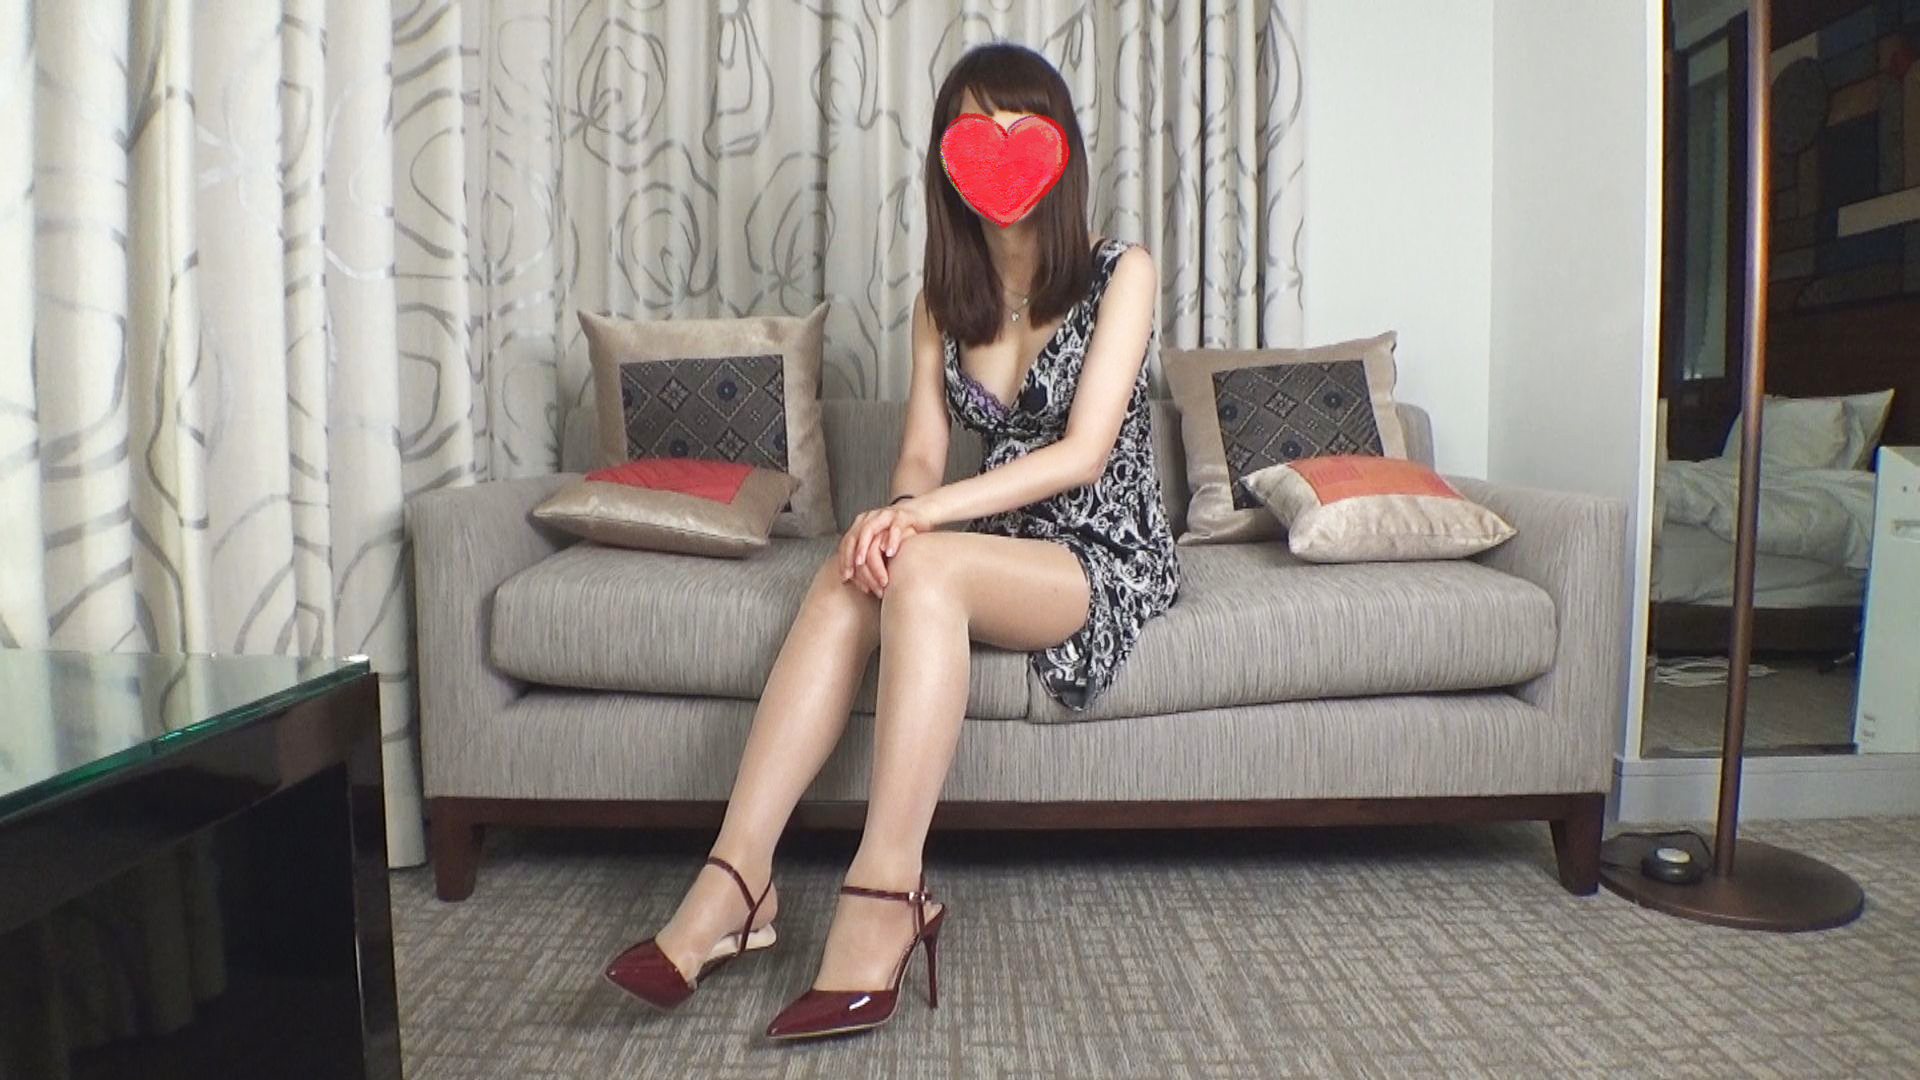 FC2 PPV 1185820 Pregnant 6-month pregnant woman ❤ Face Barre NG ❤ Absolute secret private pantyhose photo